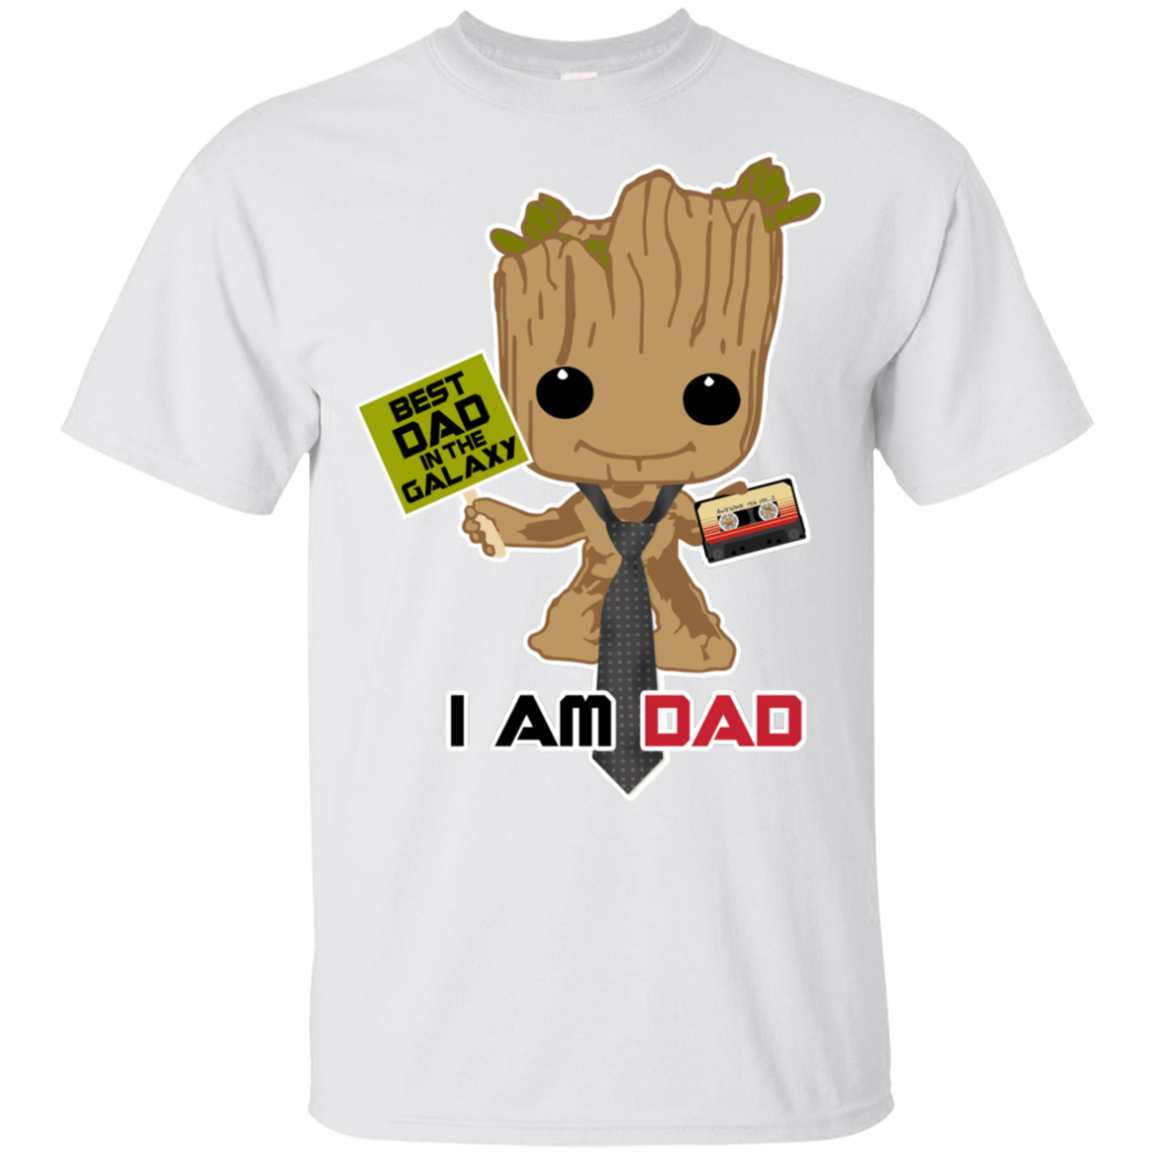 I Am Dad - T-Shirt